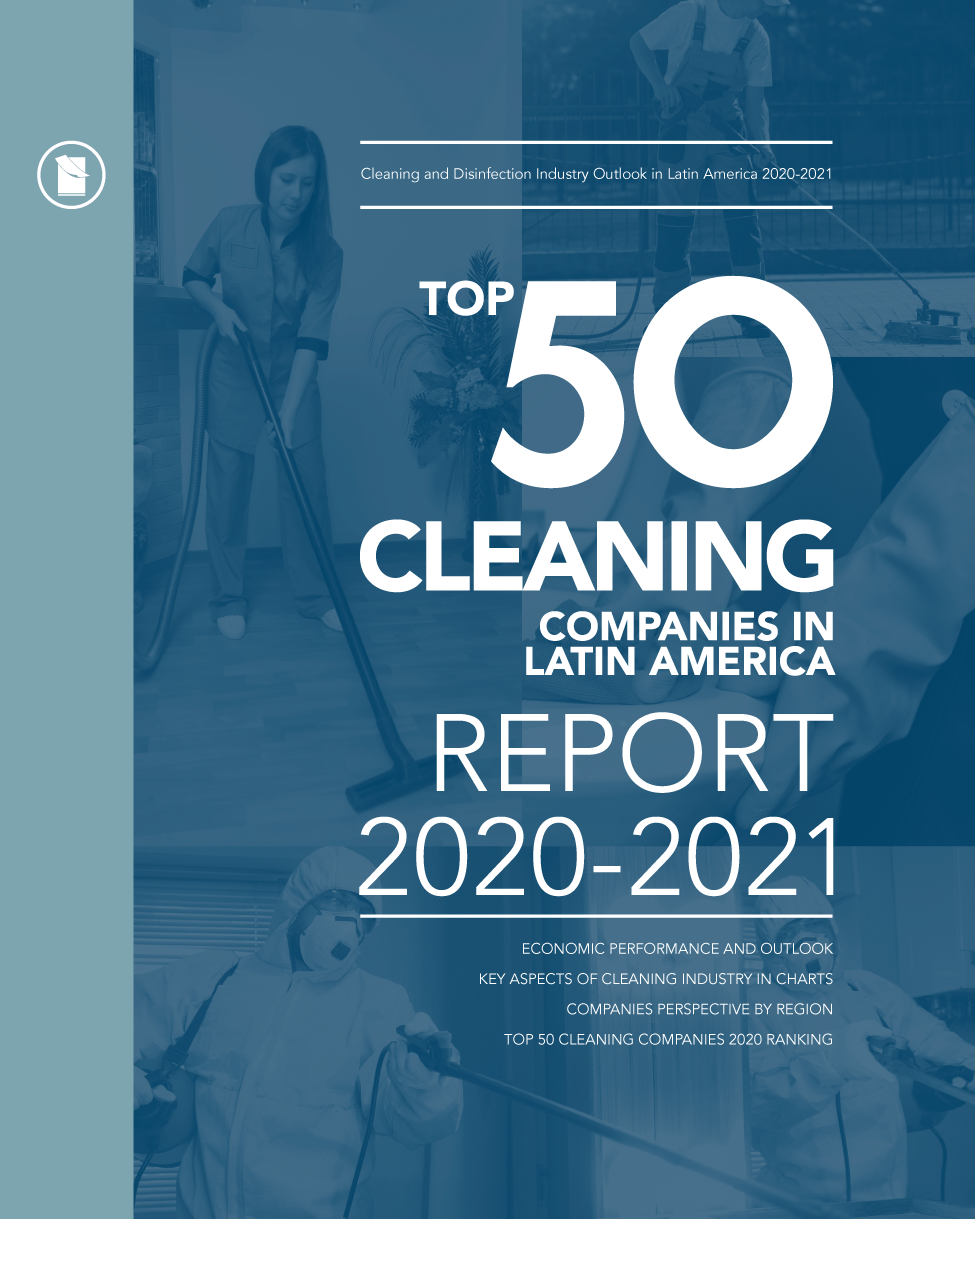 TOP 50 LATIN AMERICAN CLEANING COMPANIES • 2020-2021 Image